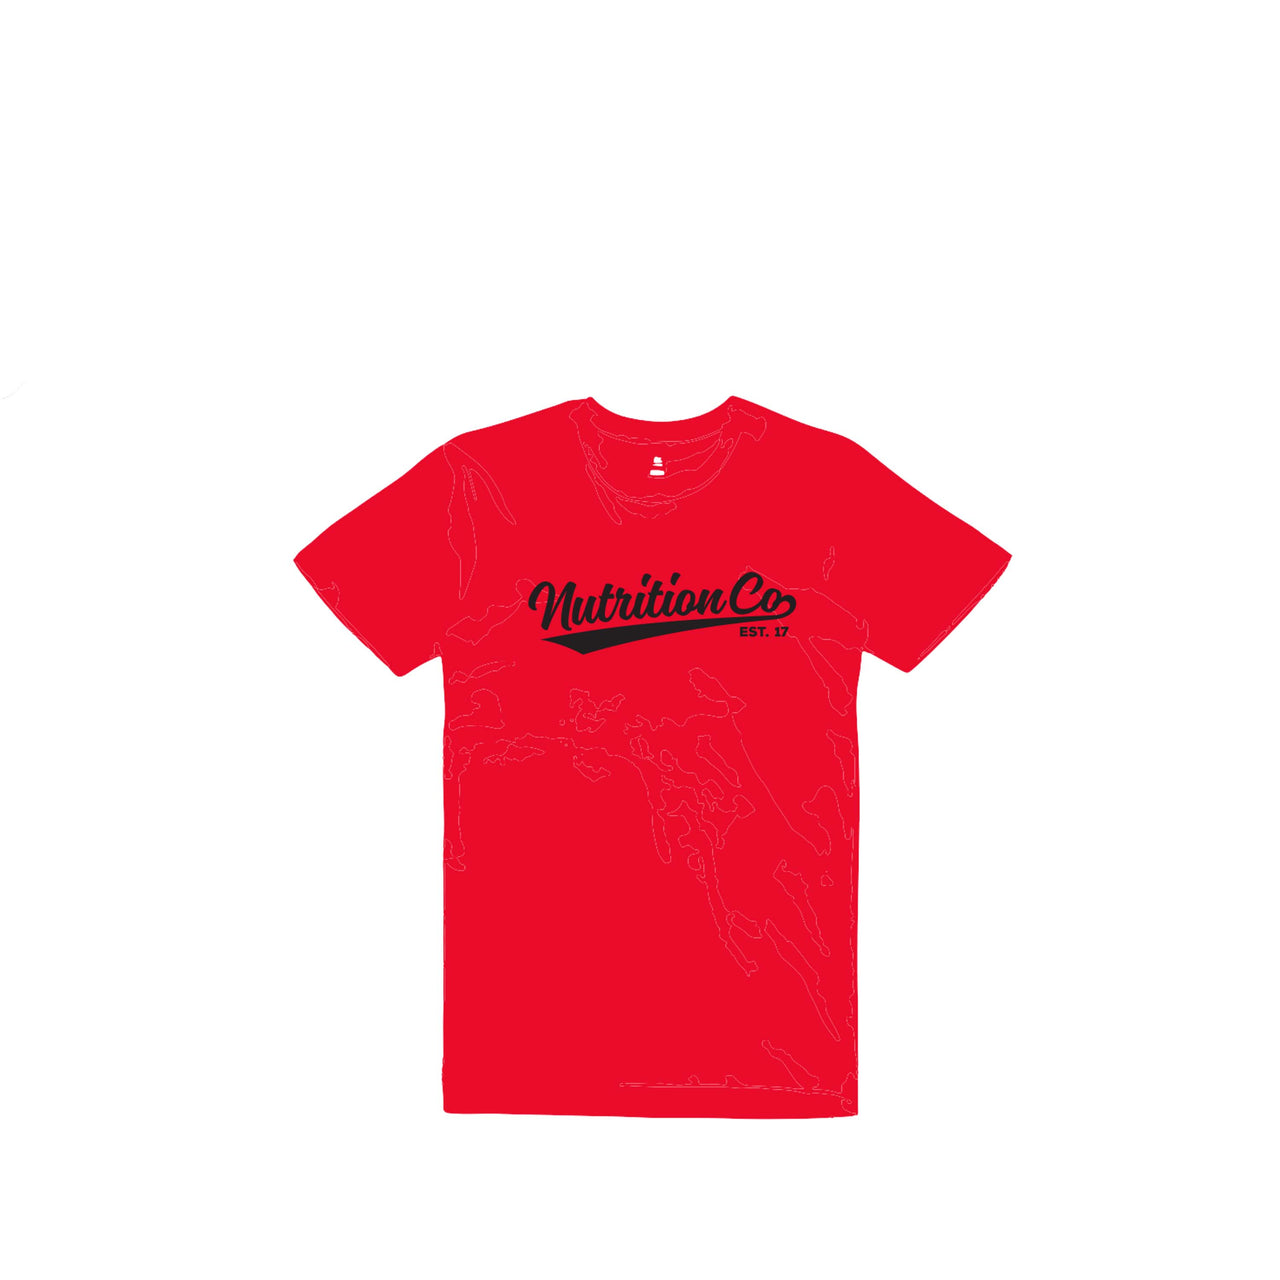 Nutrition Co Black Baller Red Tee